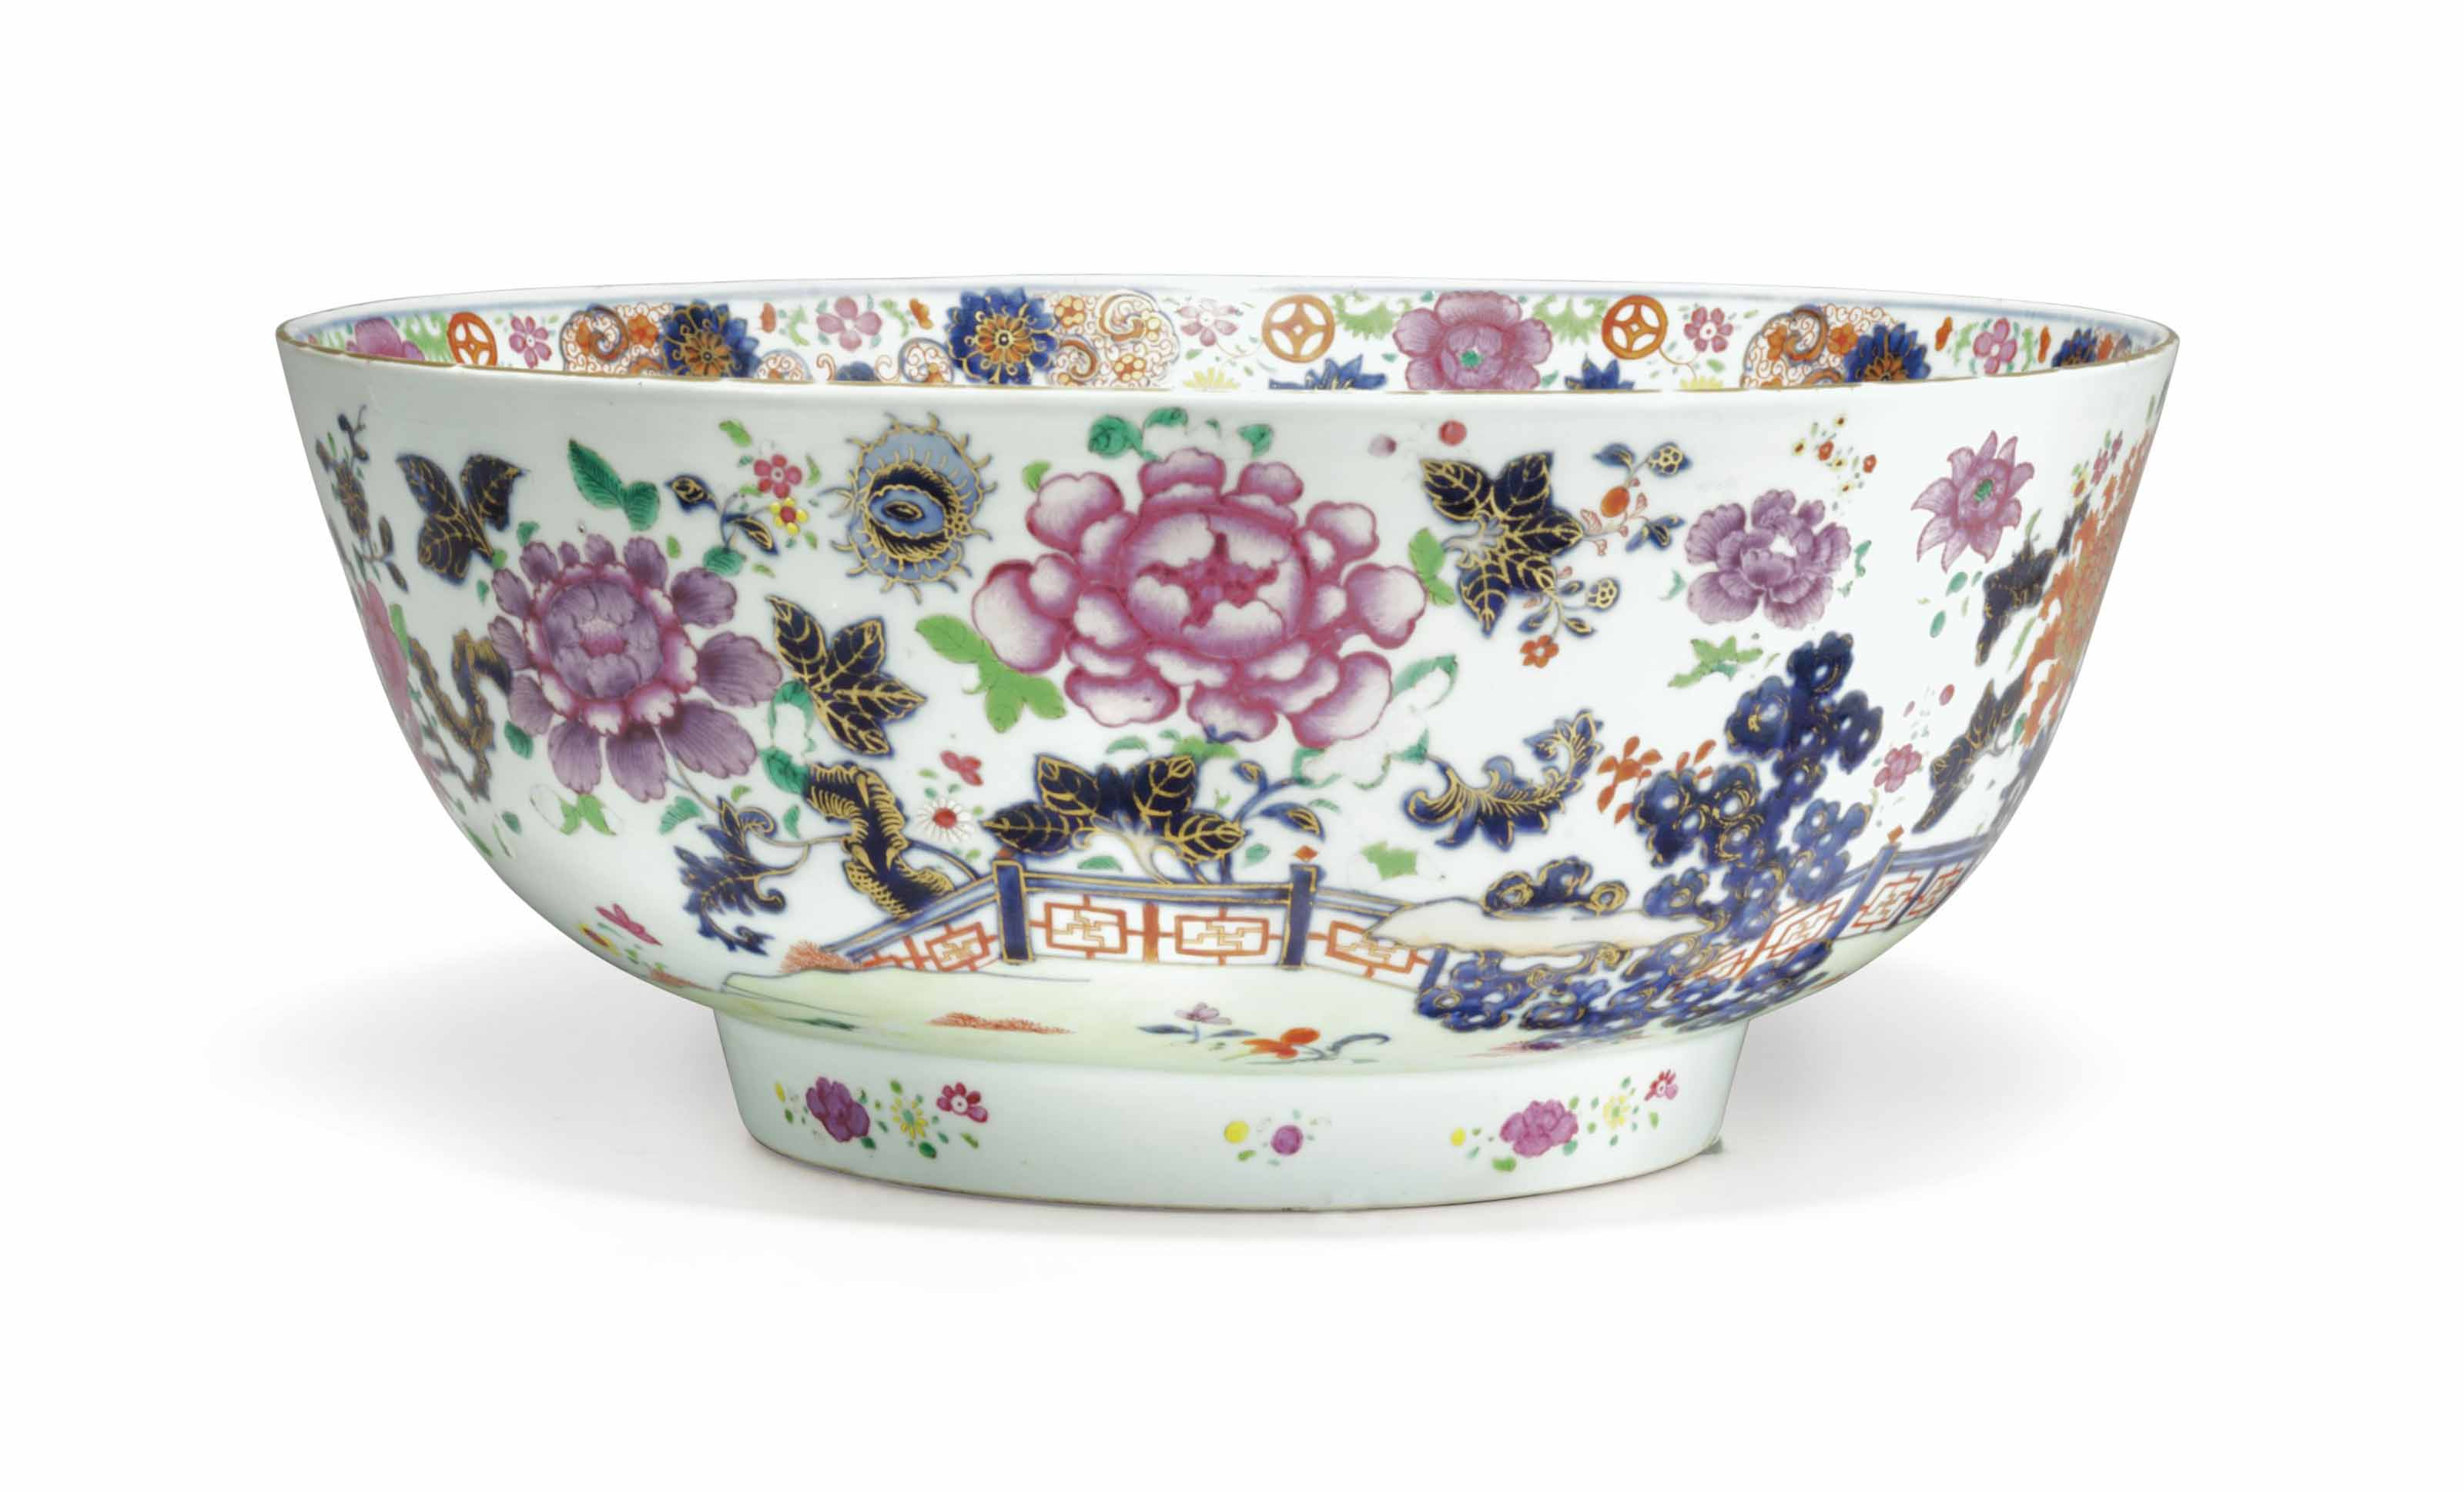 A LARGE CHINESE EXPORT PORCELAIN FAMILLE ROSE AND COBALT BLUE PUNCHBOWL